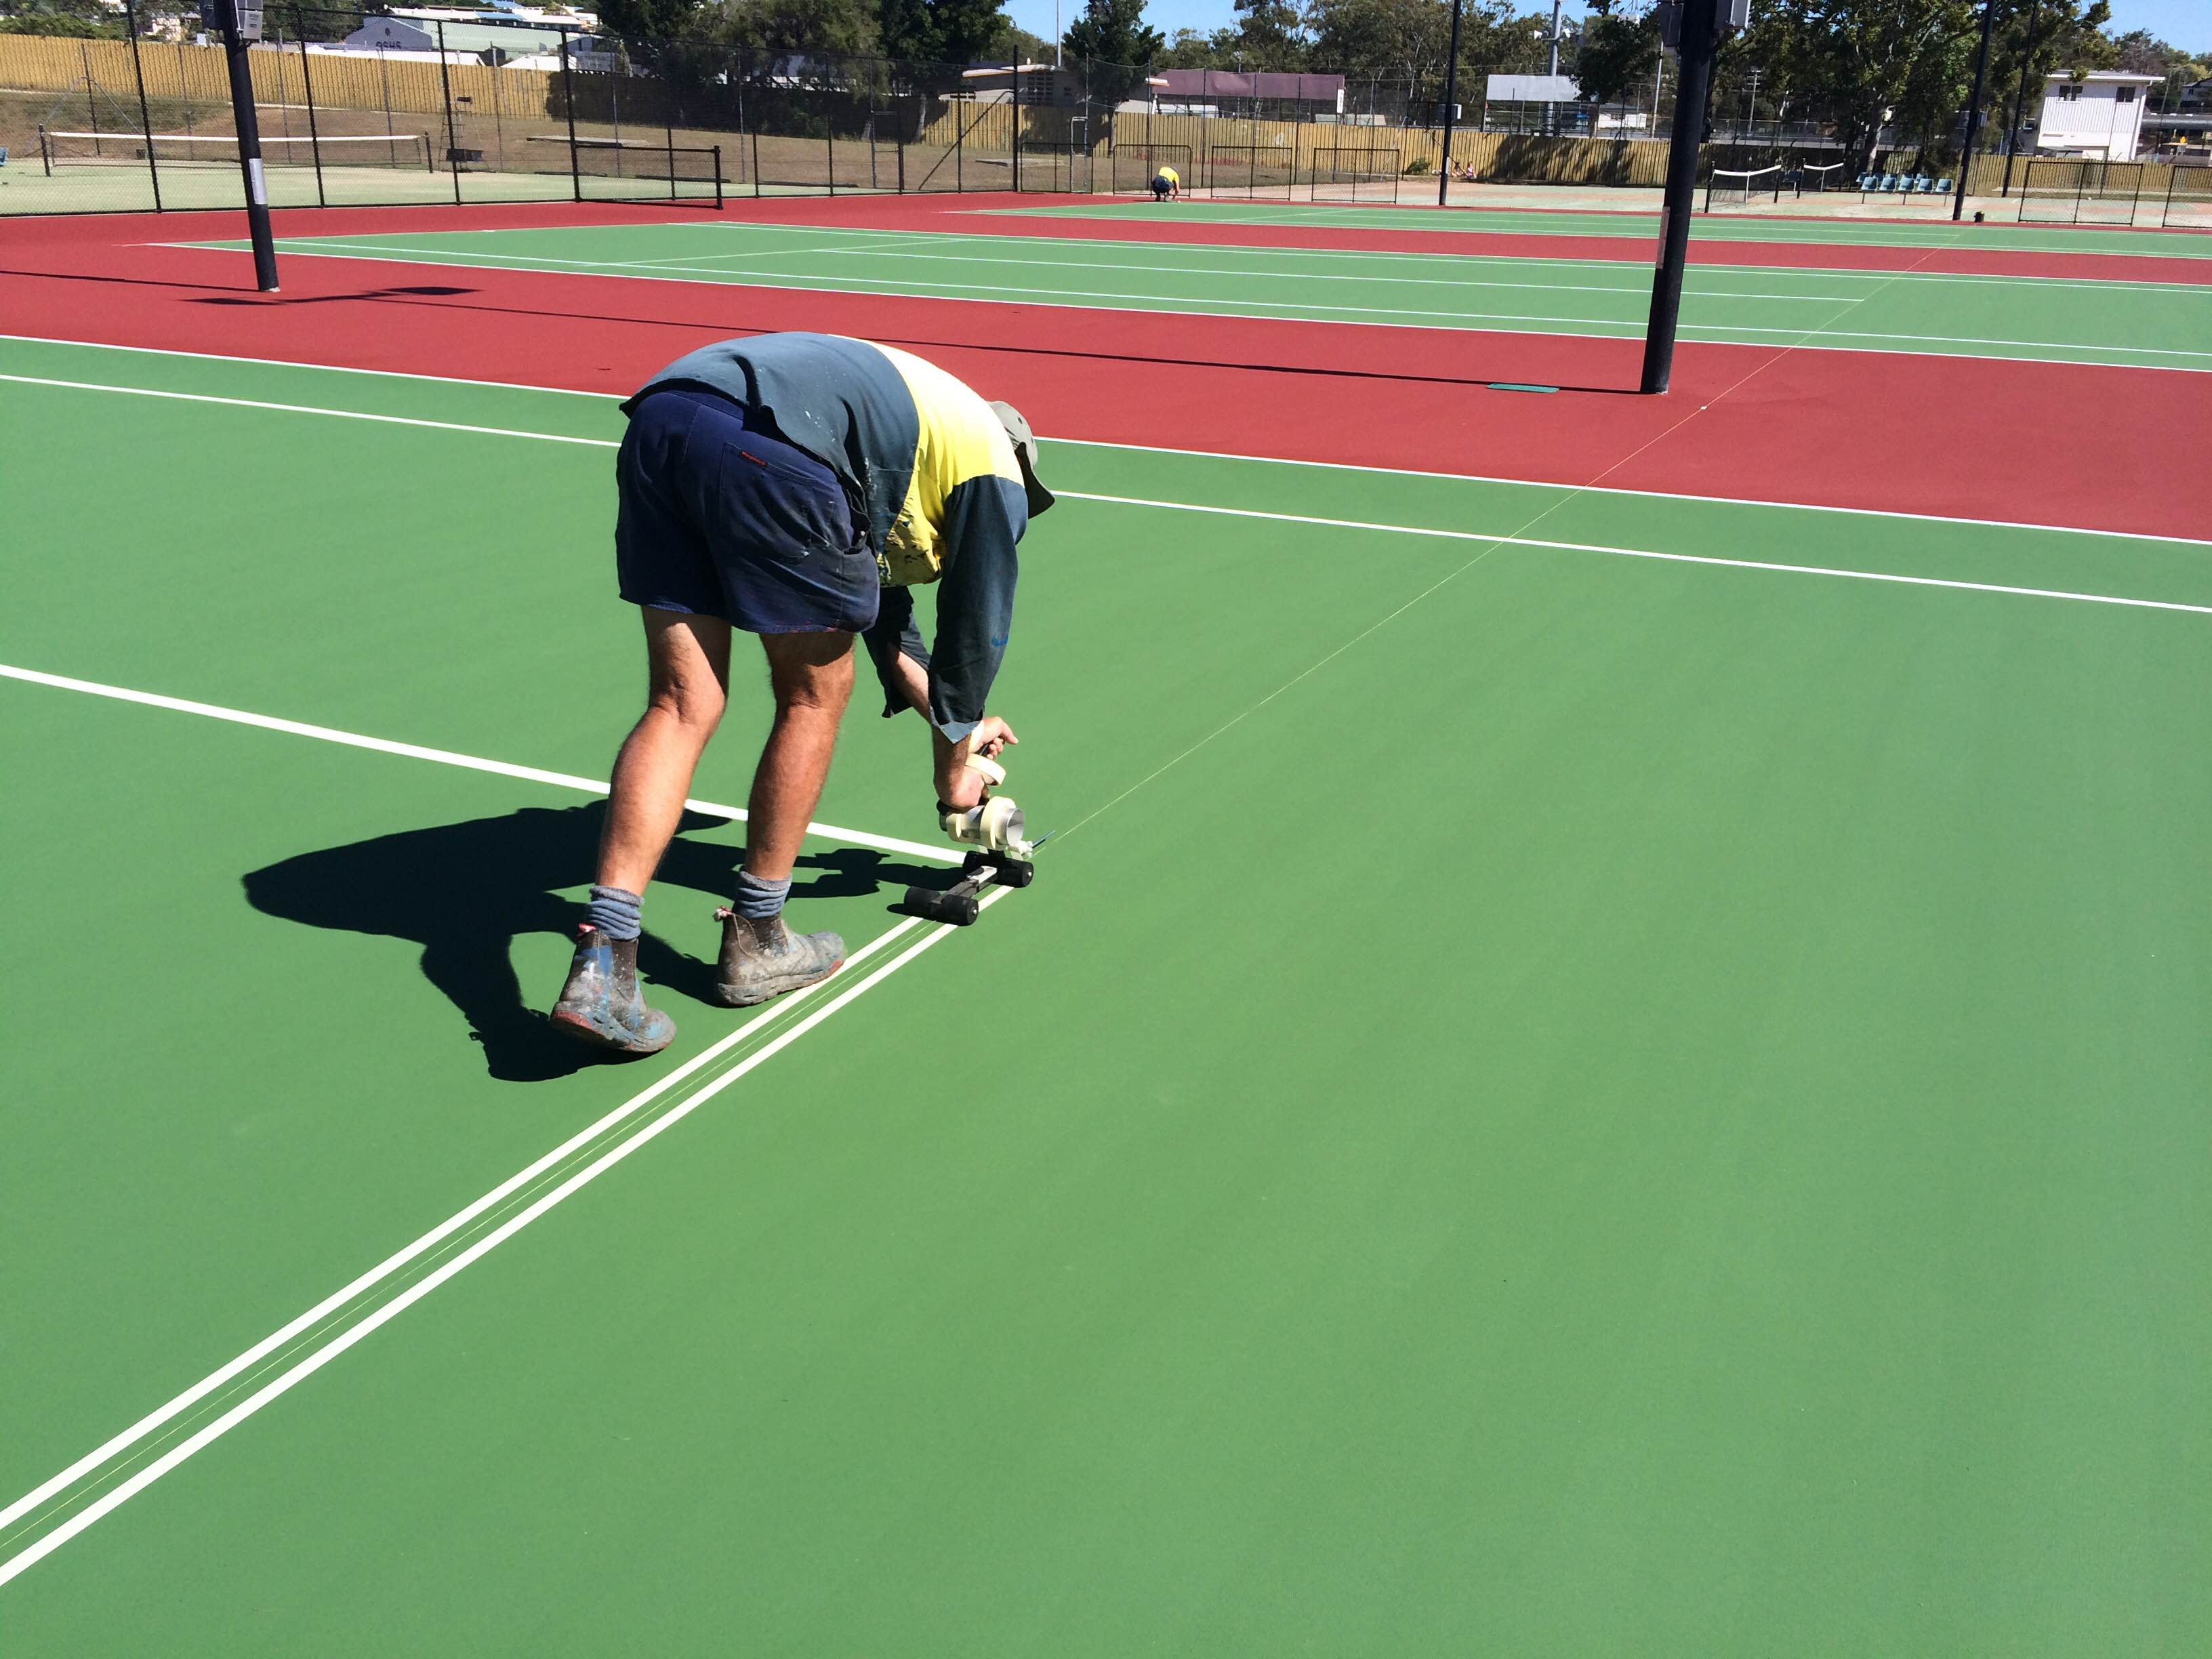 More linemarking preparations